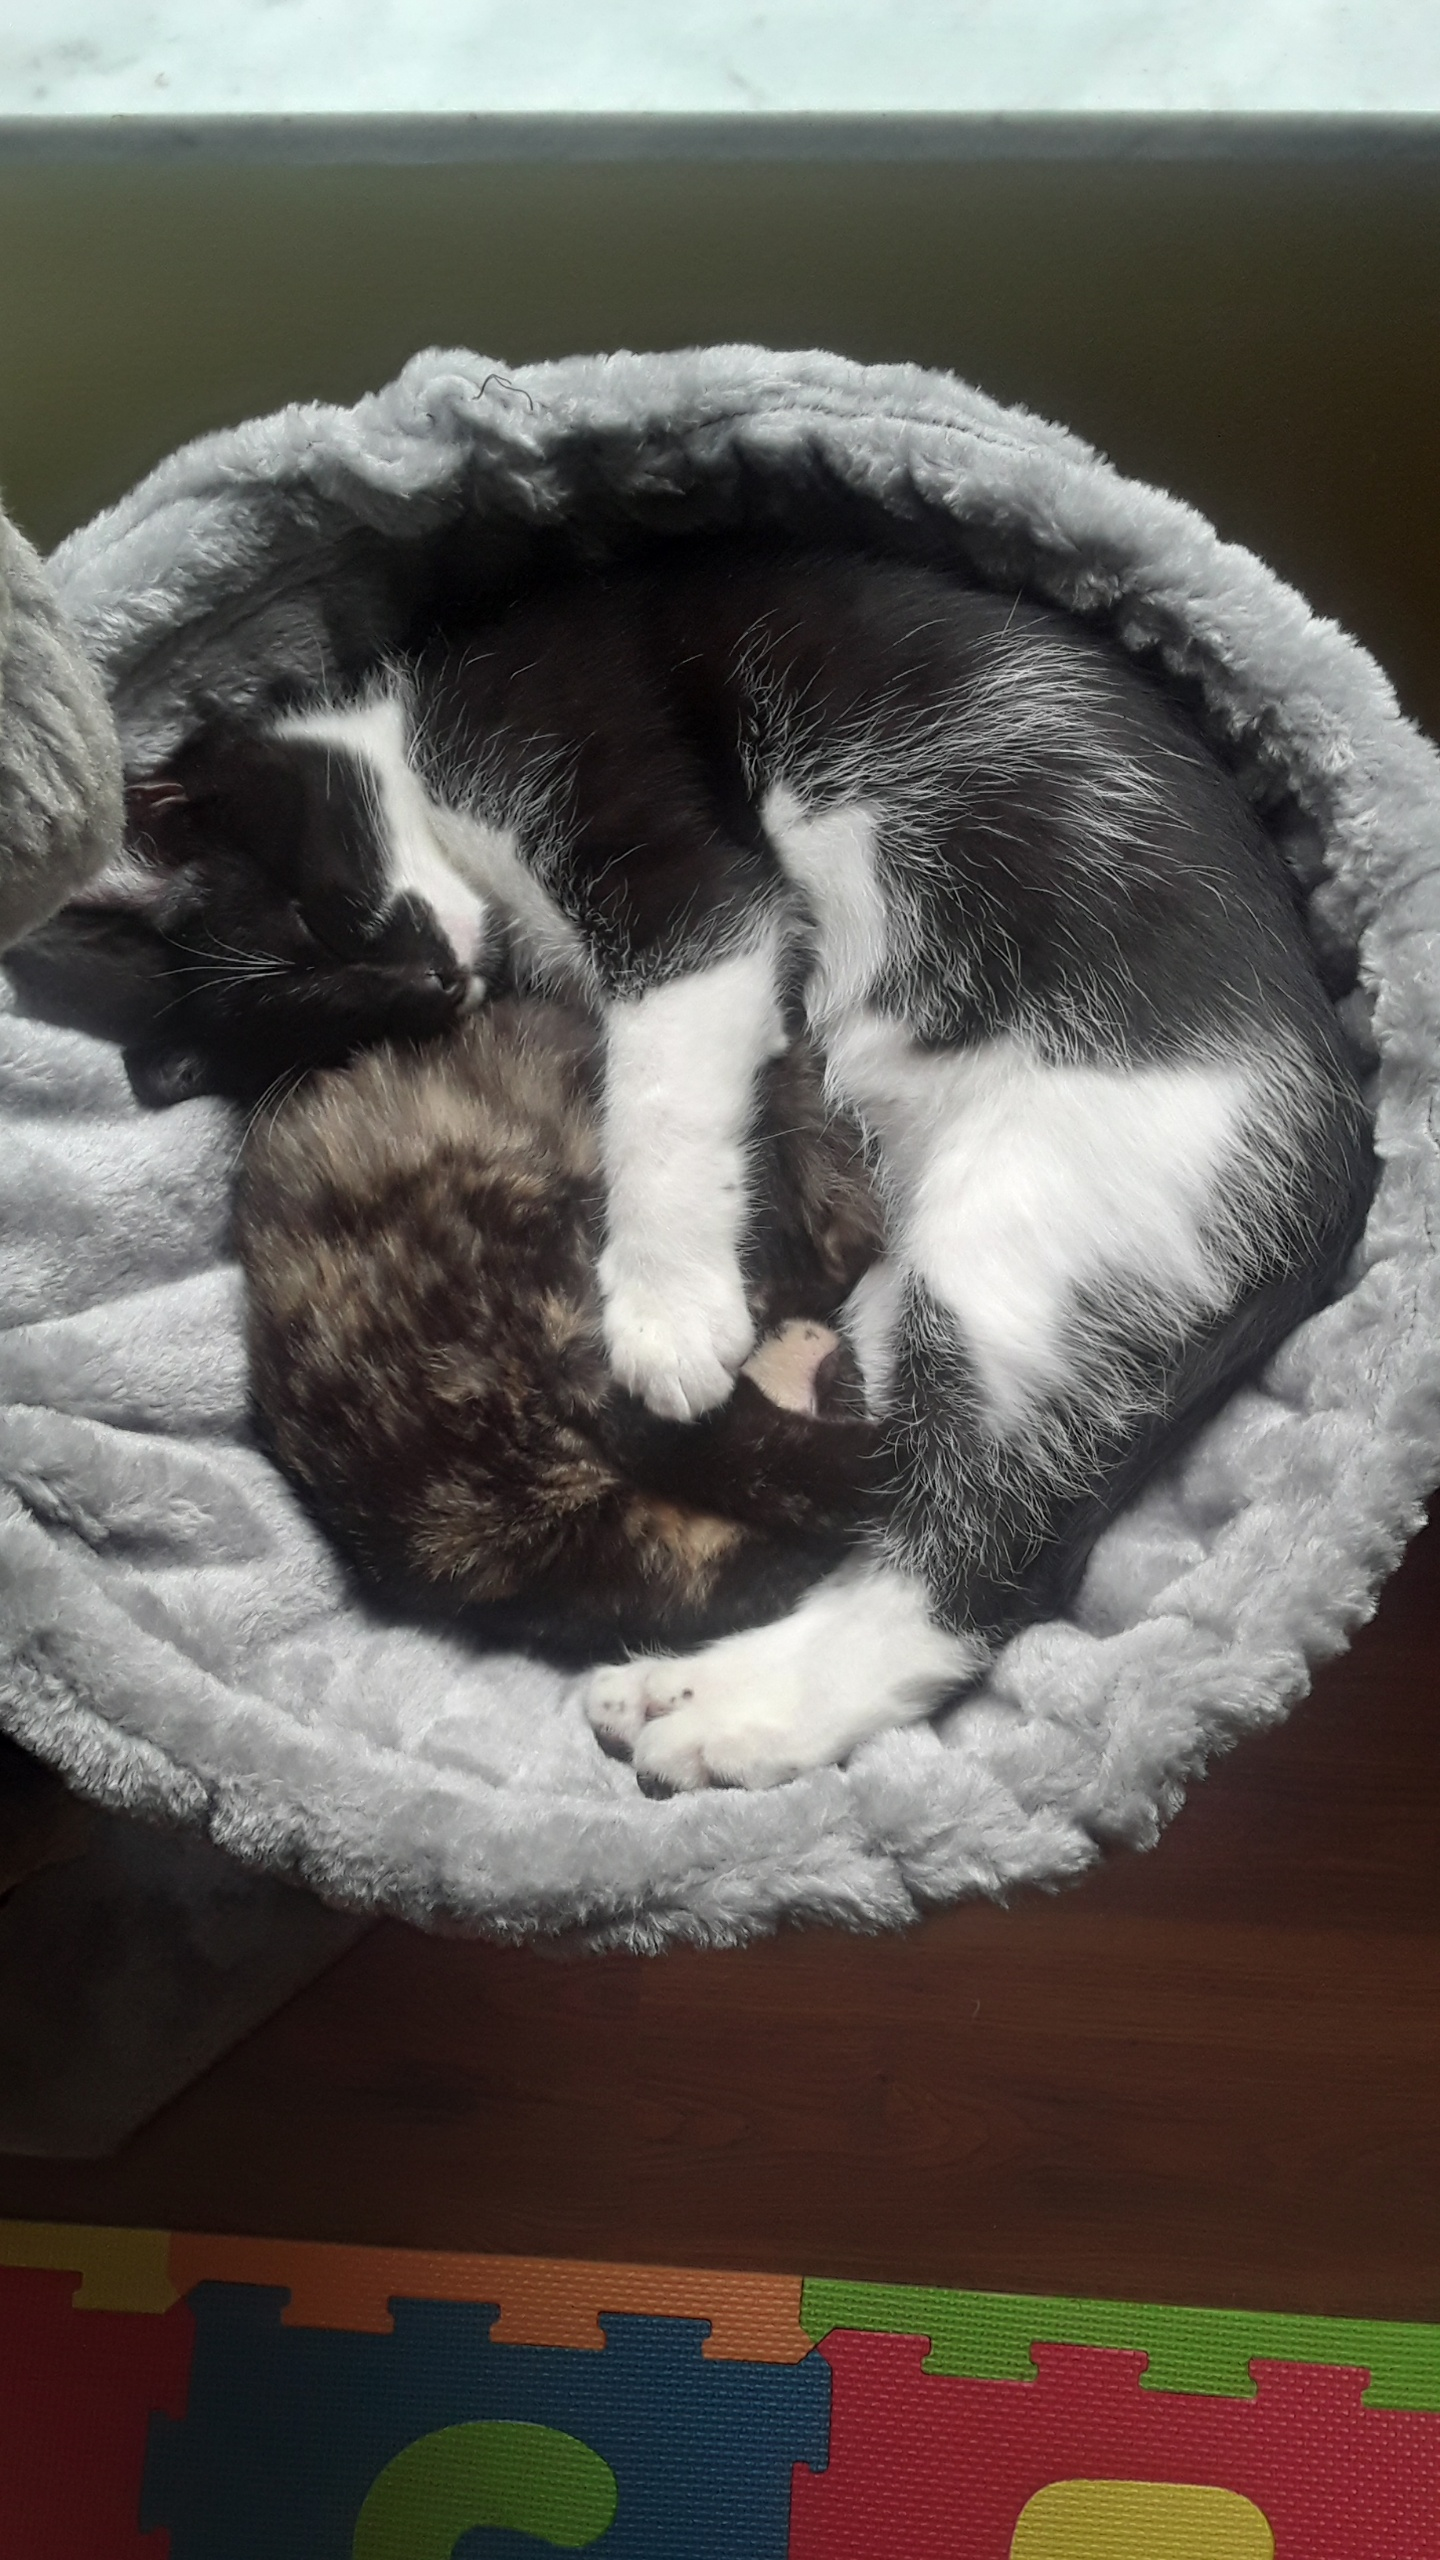 Two cats snuggled in a bed.